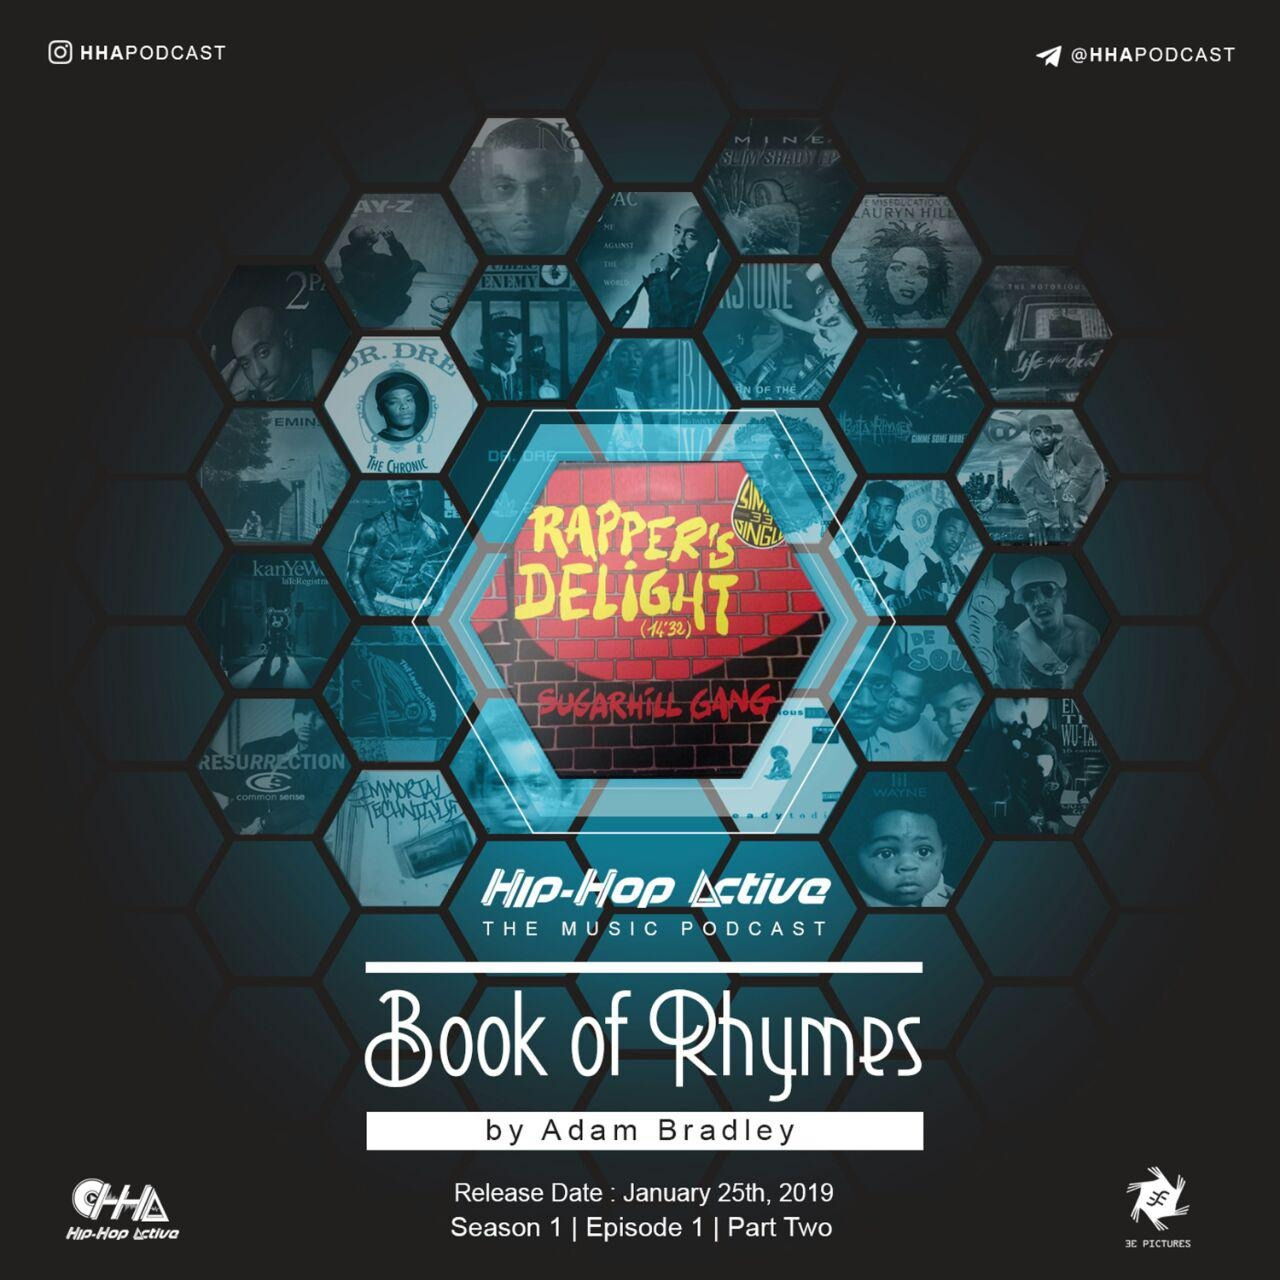 S1E1 HHAPodcast - Book of Rhymes (1. Rhythm)